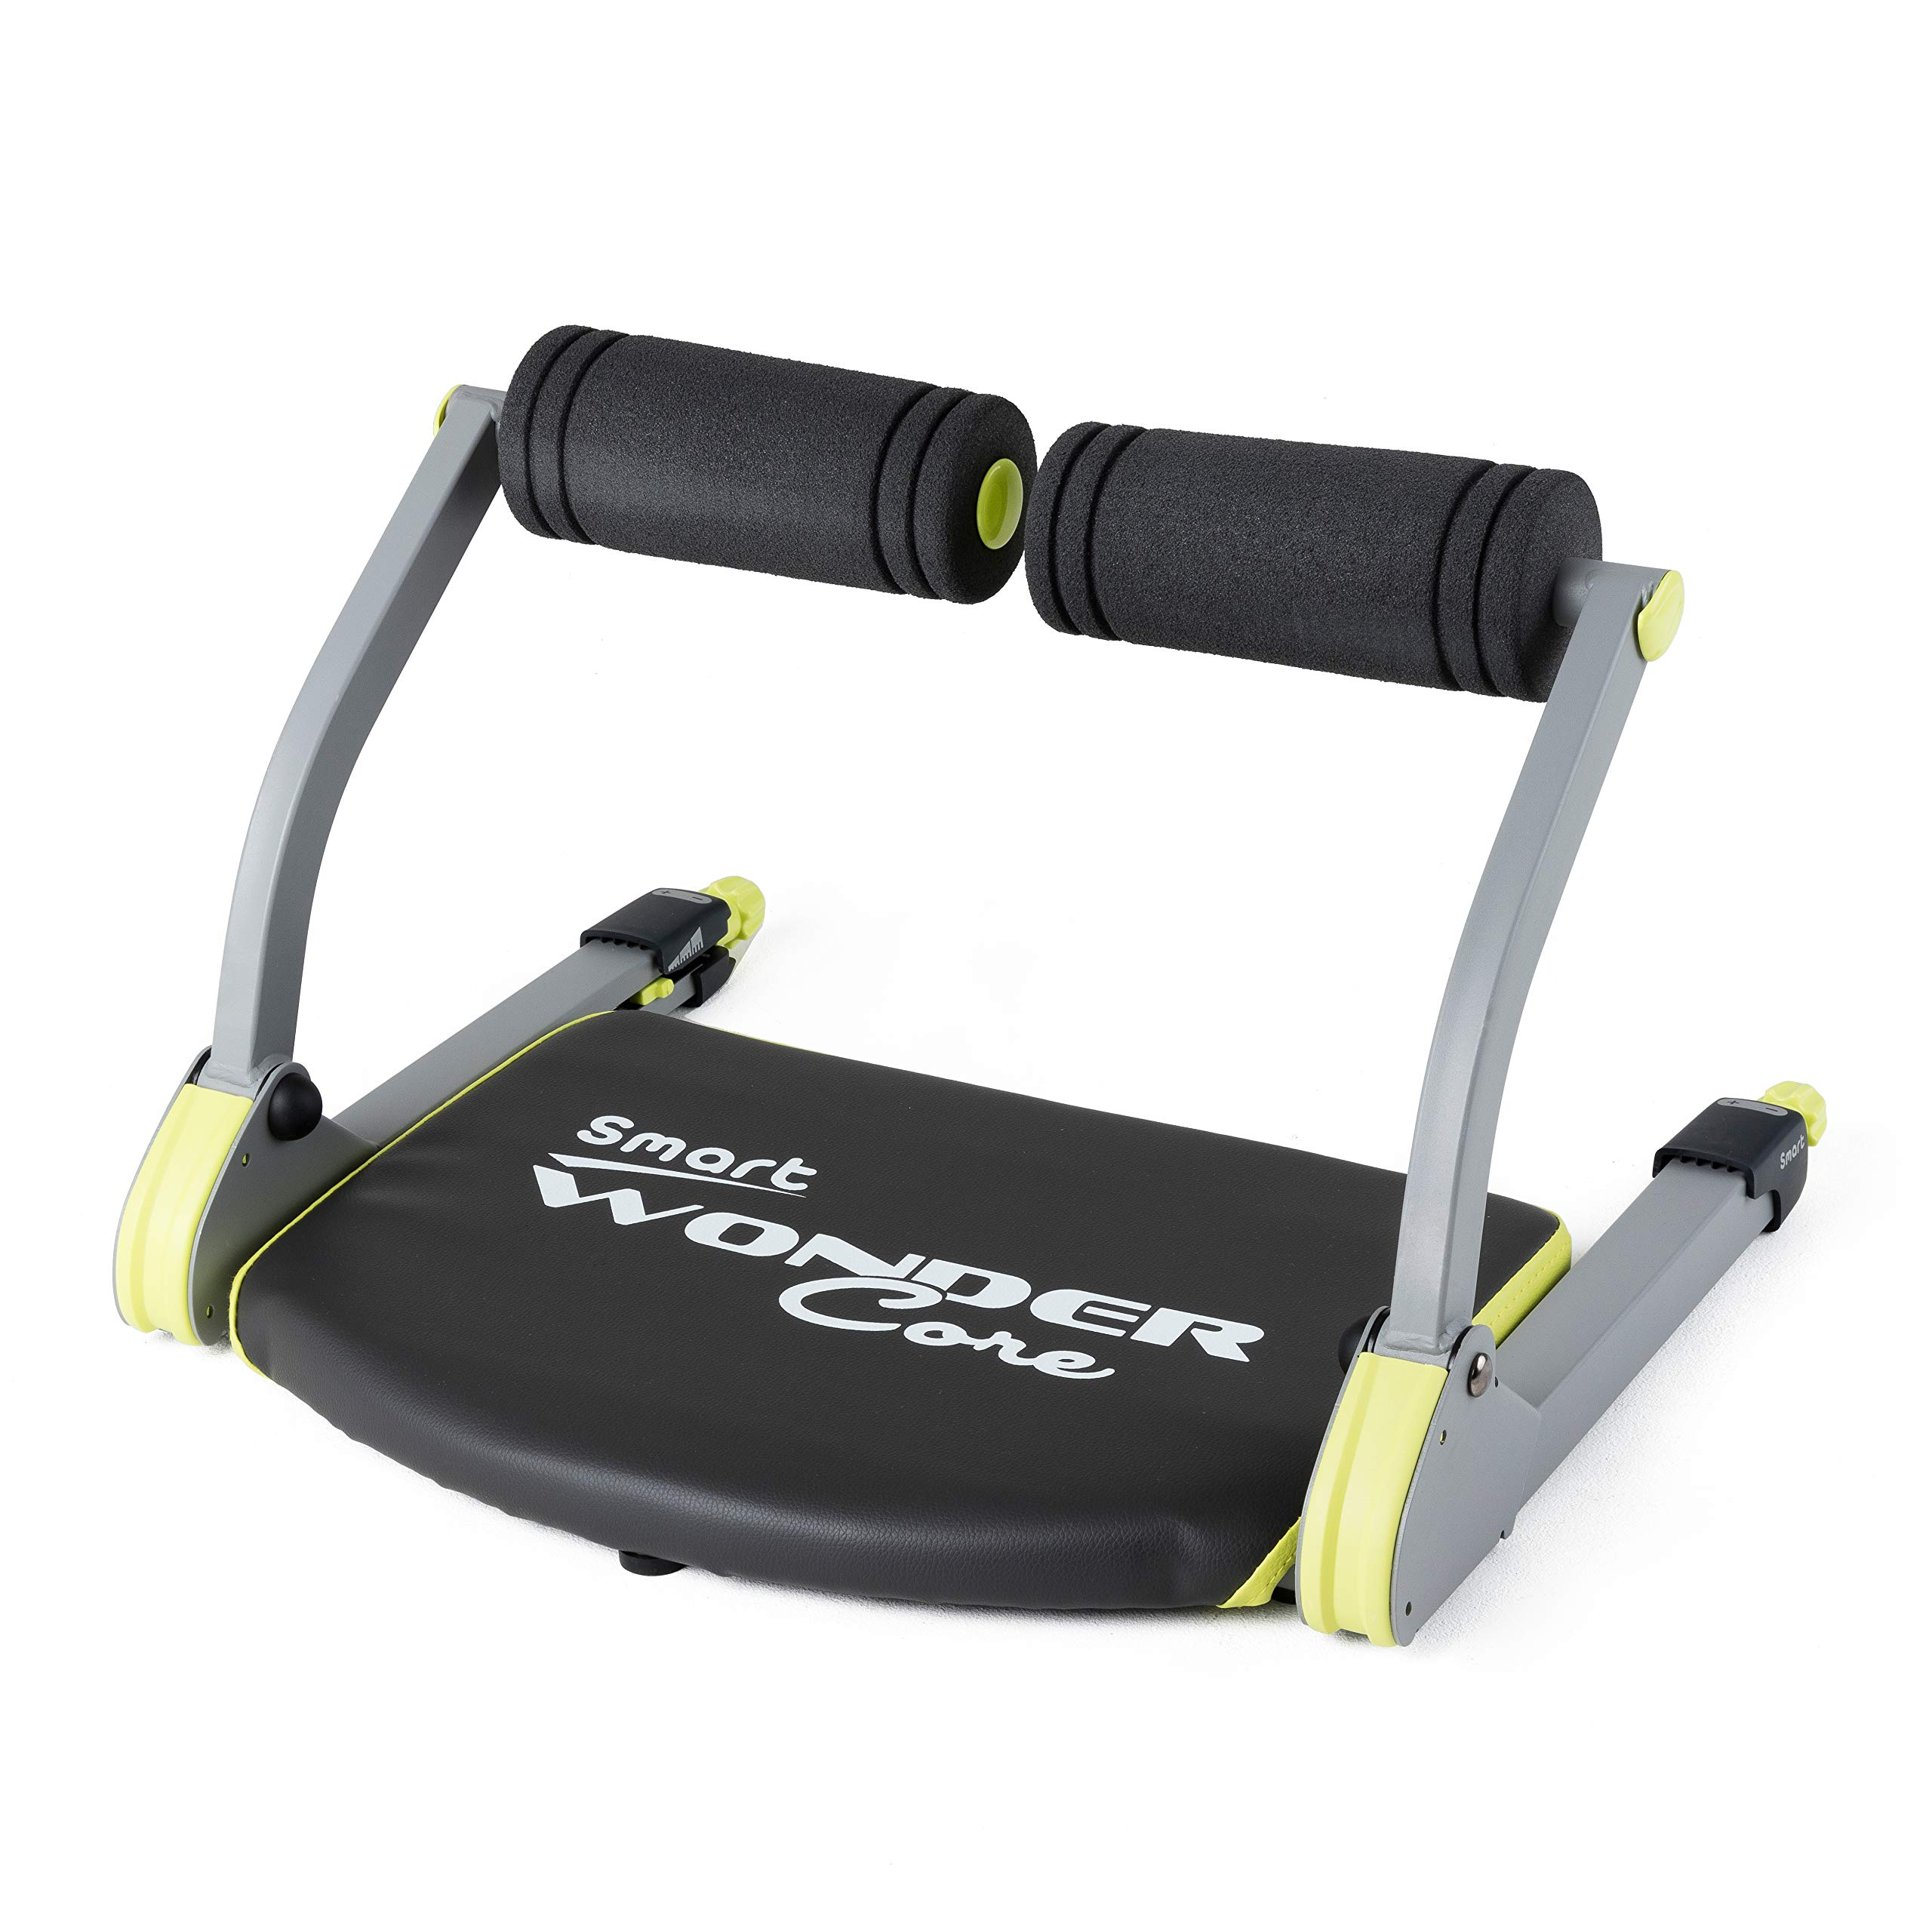 WONDER CORE Smart : Body Muscle Toning + Cardio - Fitness Equipment - Compact & Portable - Muscles Building Exercises   Color (Black/Green) with Original Training App & Fitness Guide